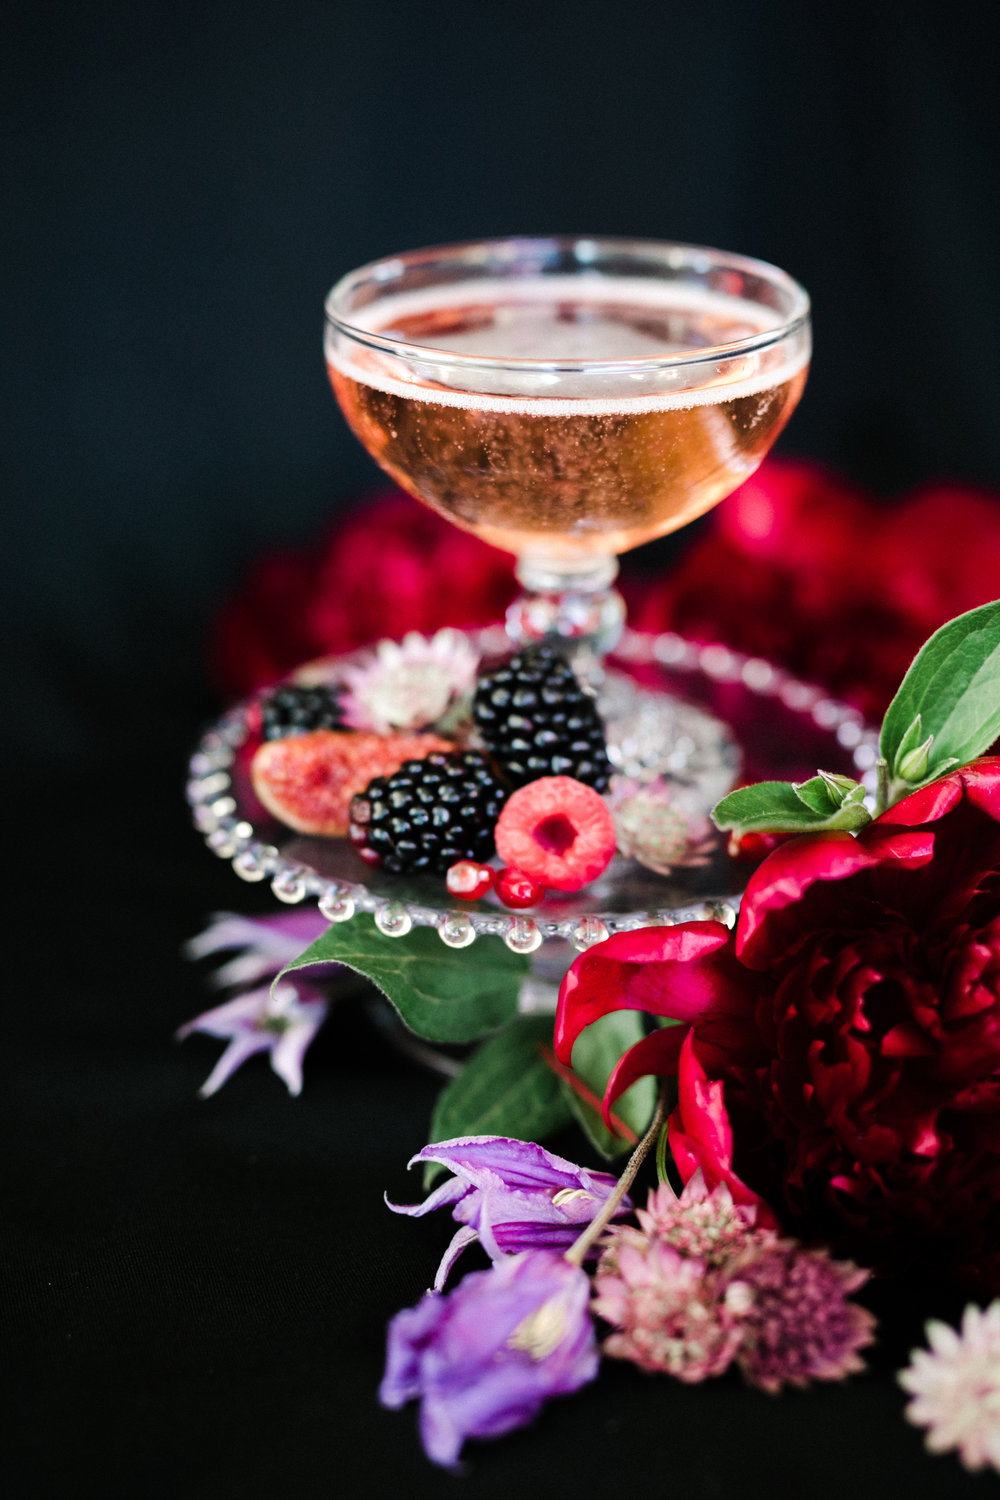 champagne and berries on vintage glass dish